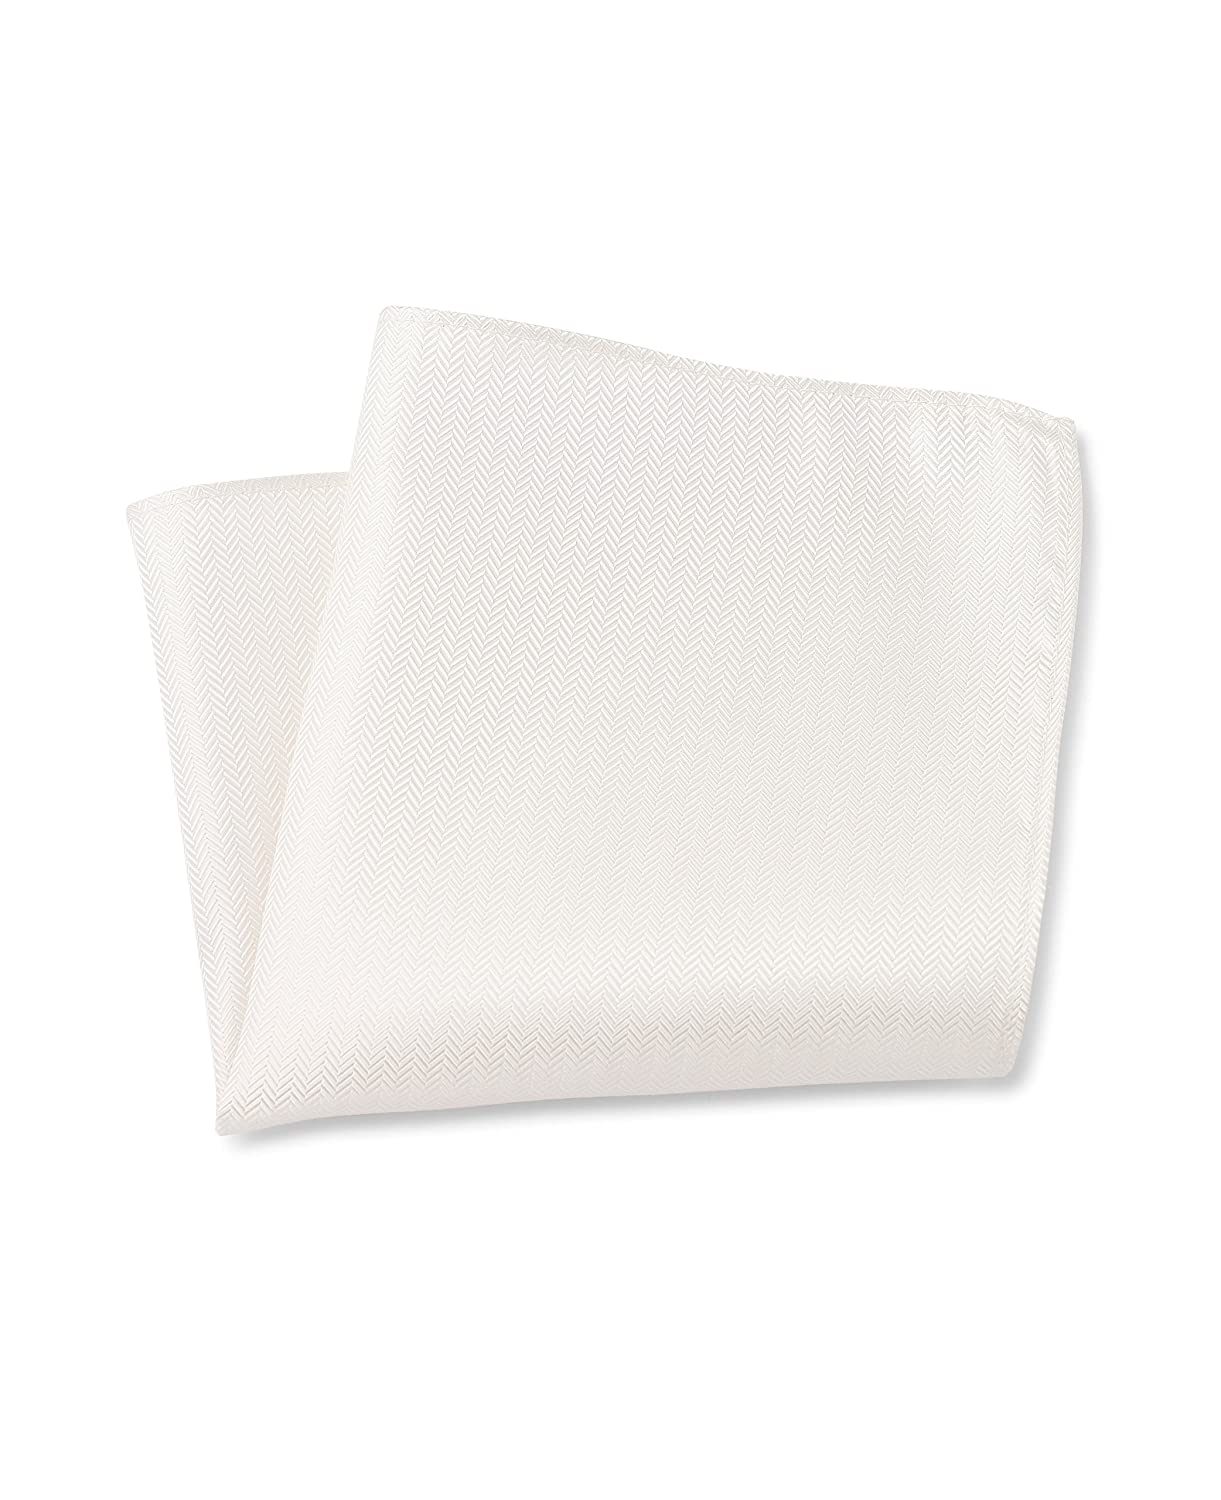 Savile Row Men's Cream Herringbone Silk Pocket Square рубашка savile row цвет бордовый